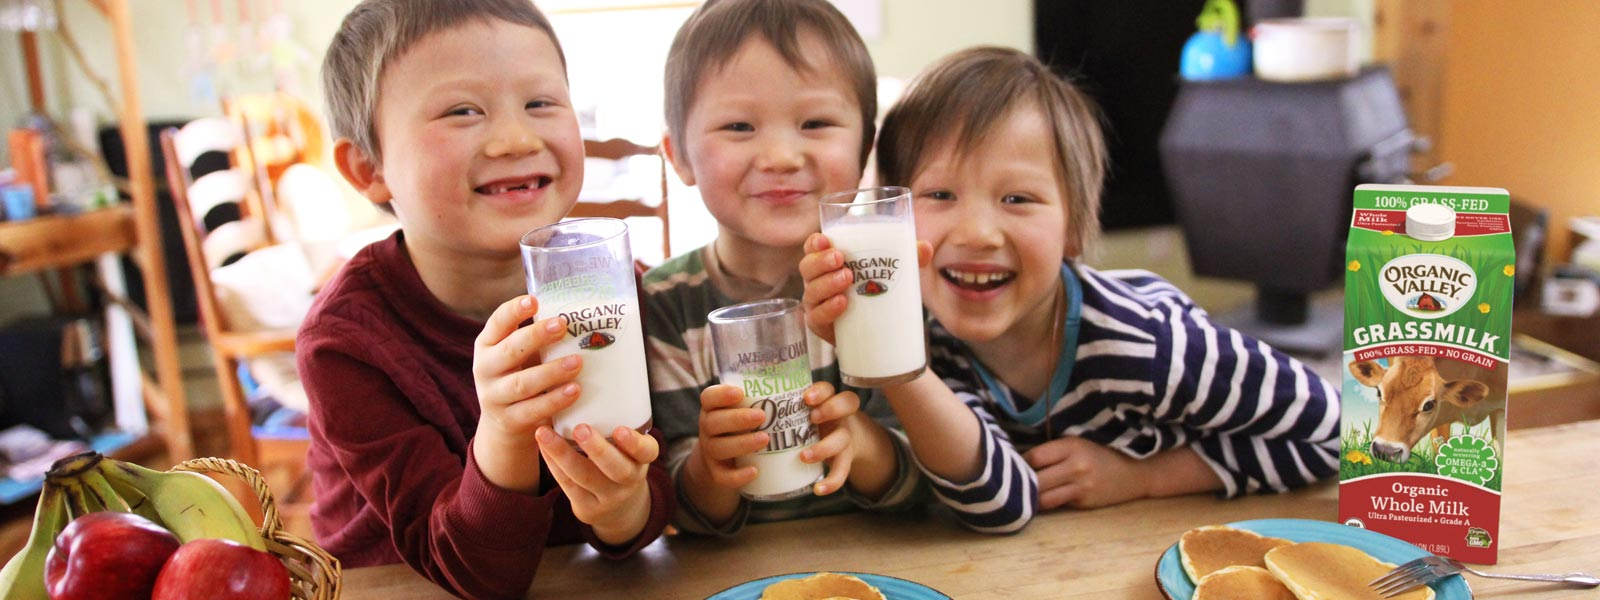 Asian children smile with glass of milk in hand.